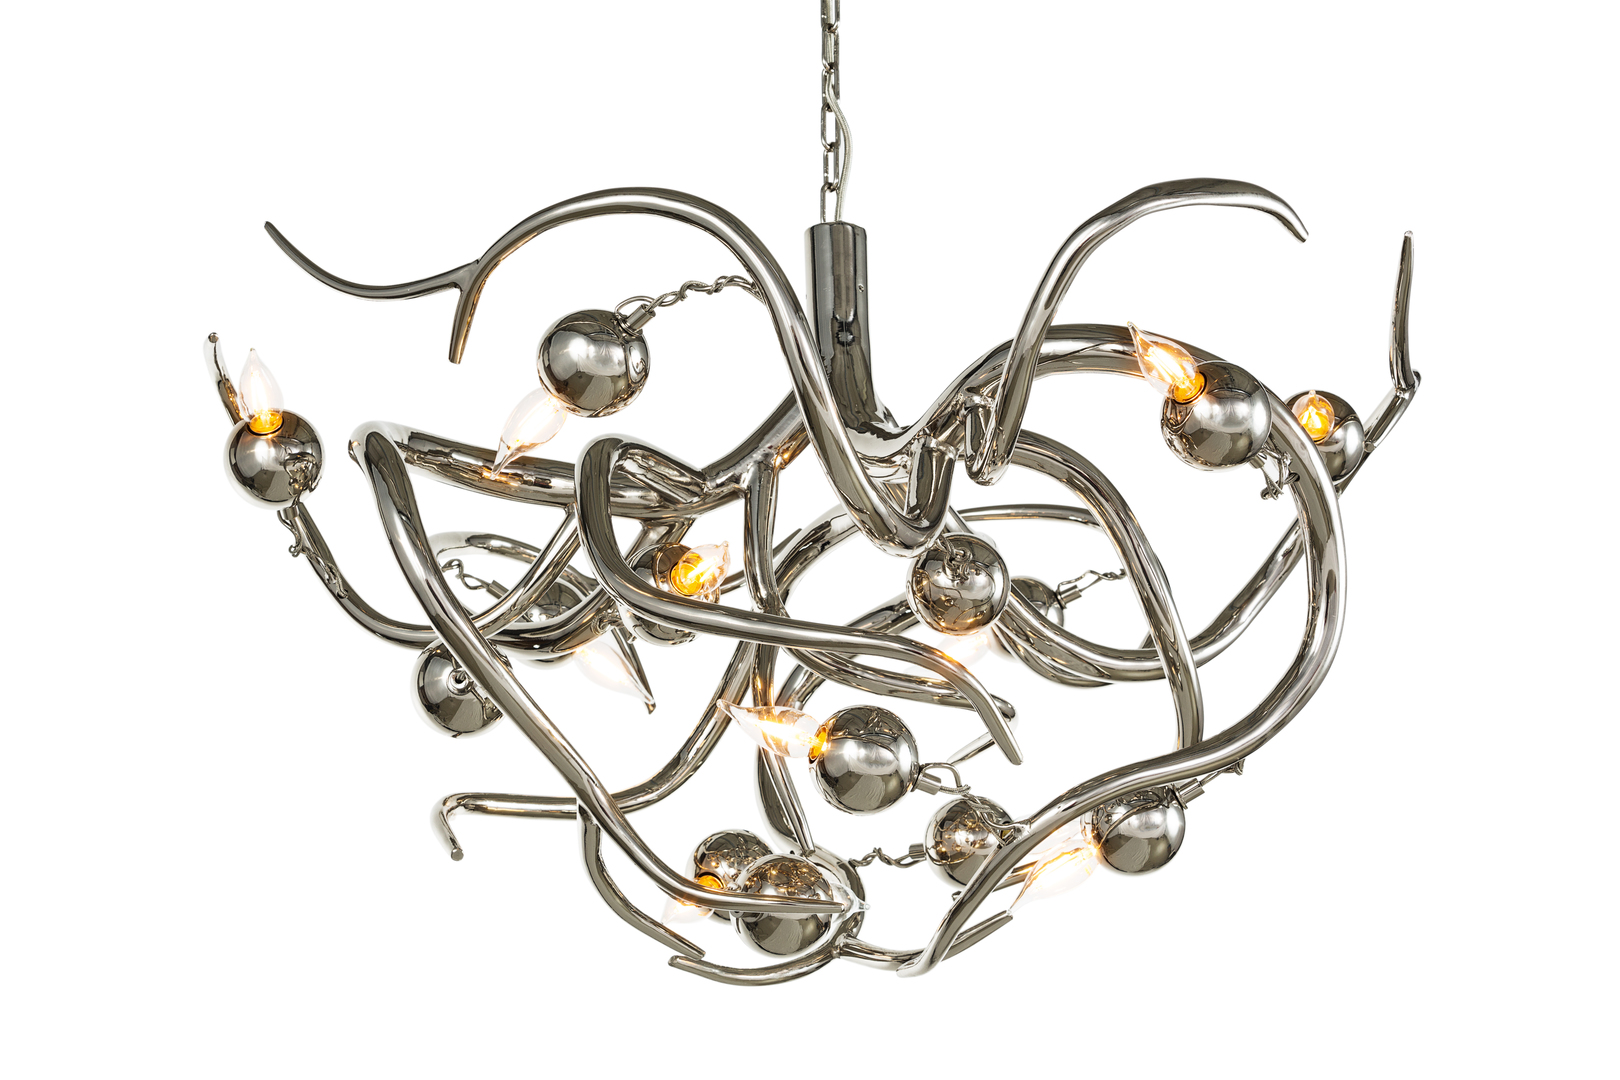 brandvanegmond_eve_chandelier_round_nickel finish_EVEC100N_studio_whitebackground_02.jpg